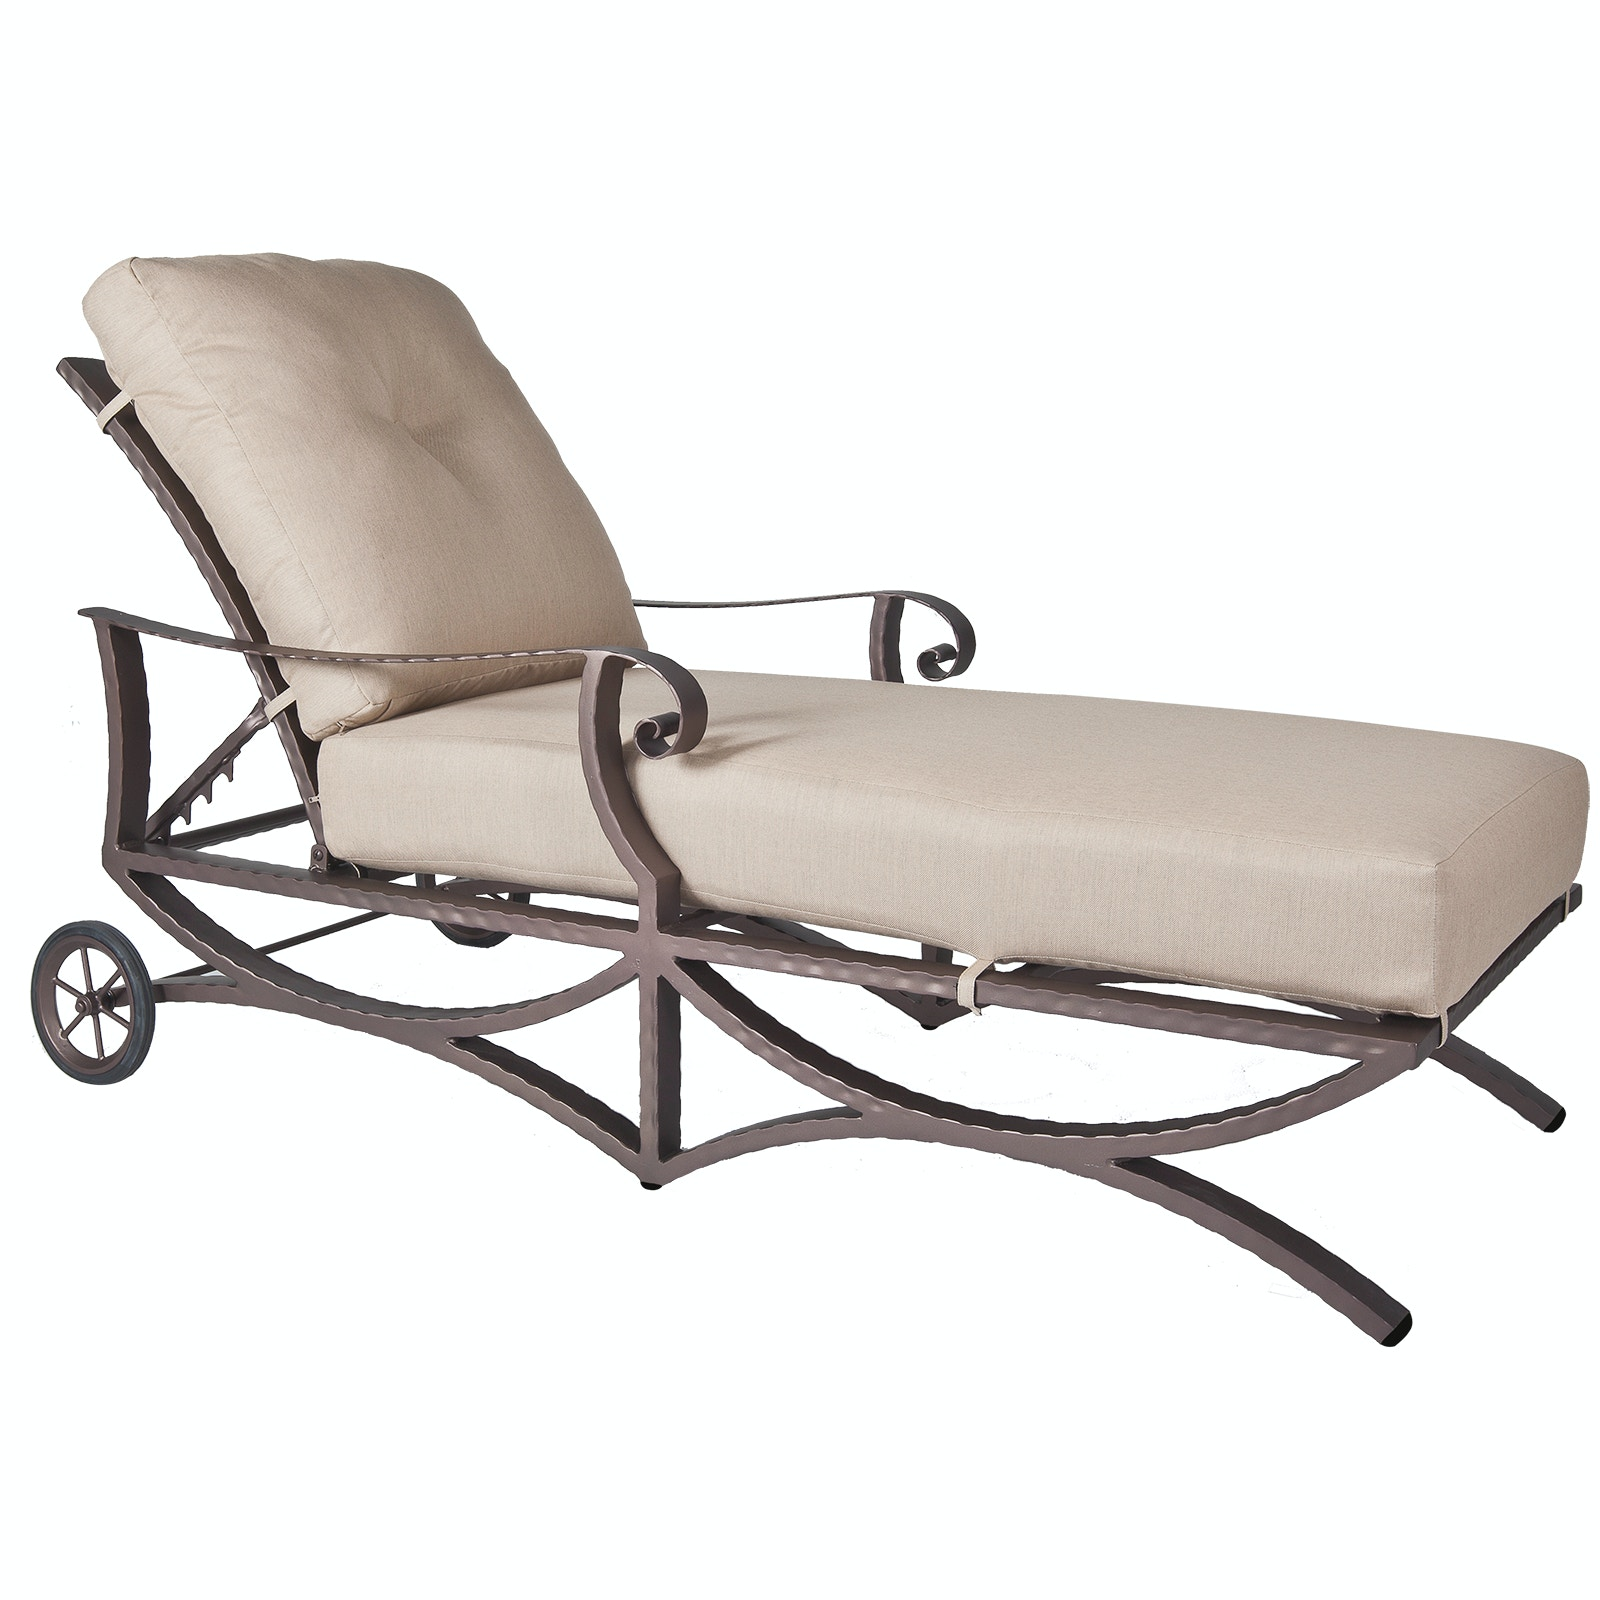 OW Lee Furniture Luna Adjustable Chaise 32128 CH